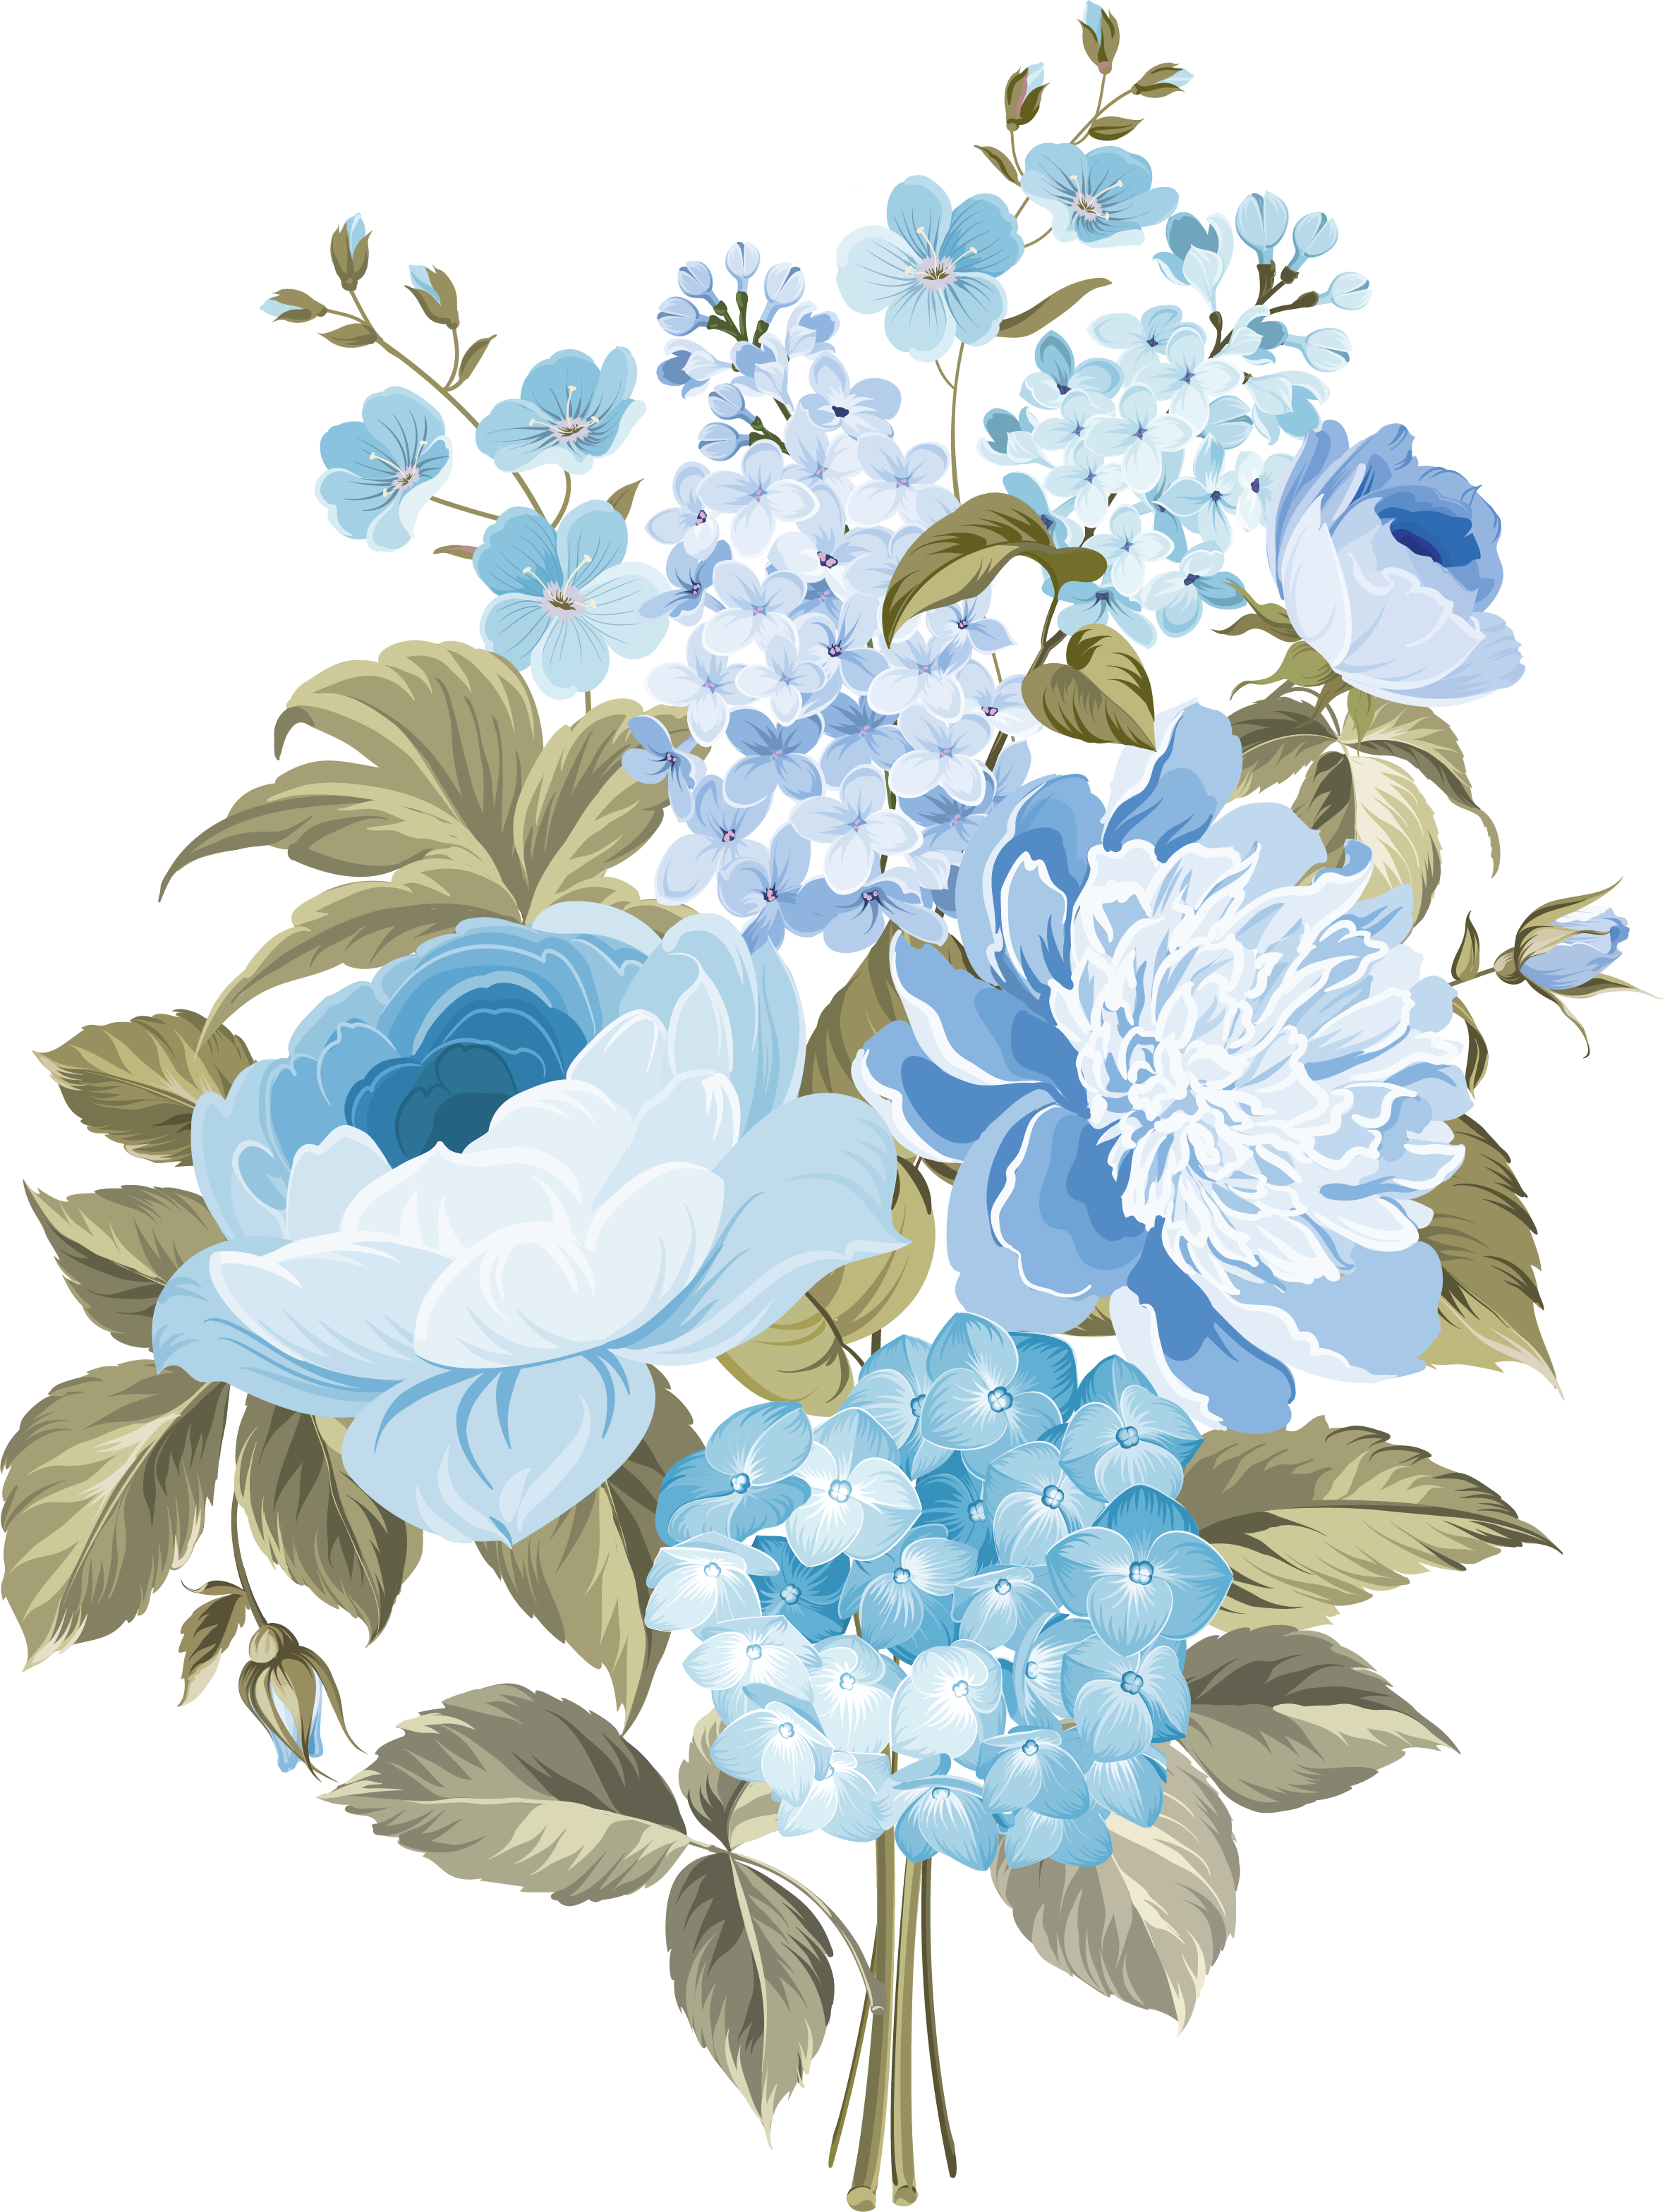 Flores azules png. My design blue flowers